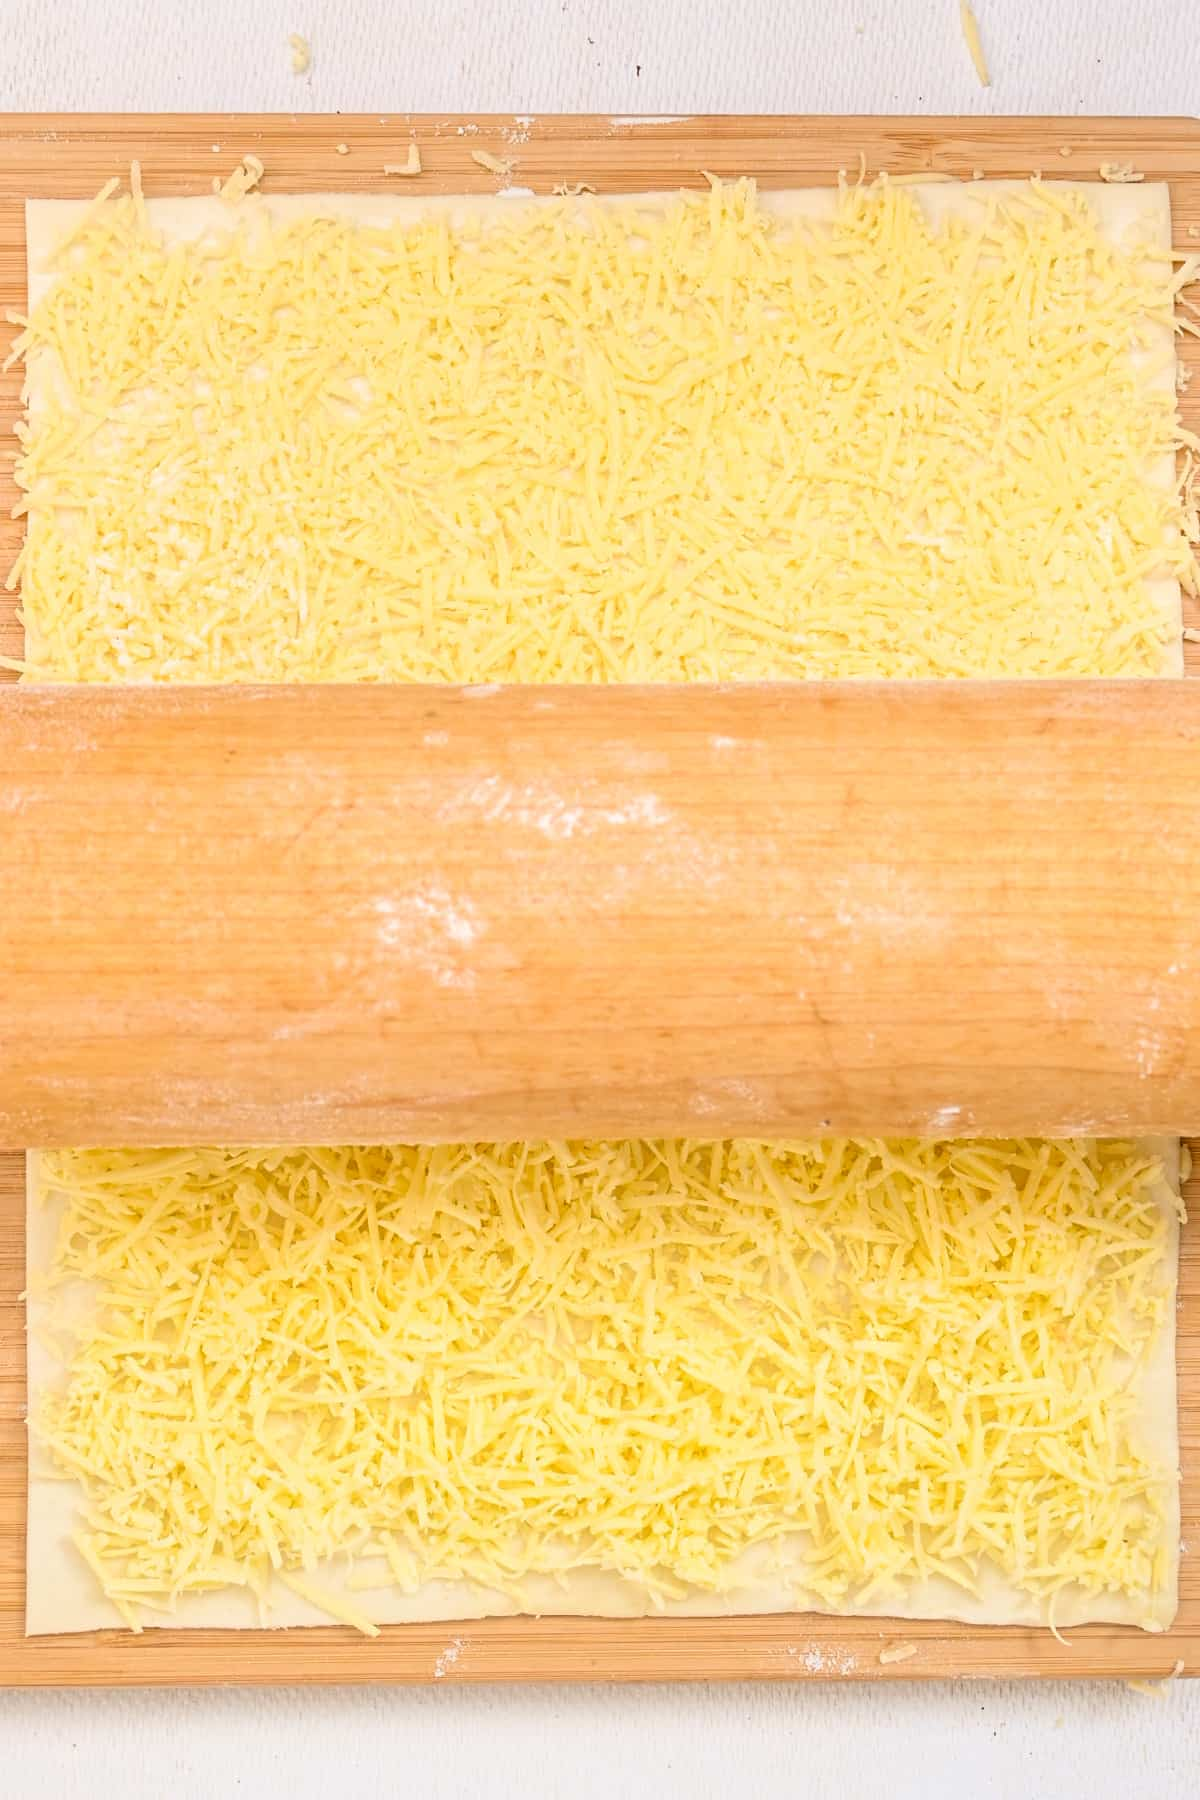 Grated cheese is firmed down on pastry with a rolling pin.